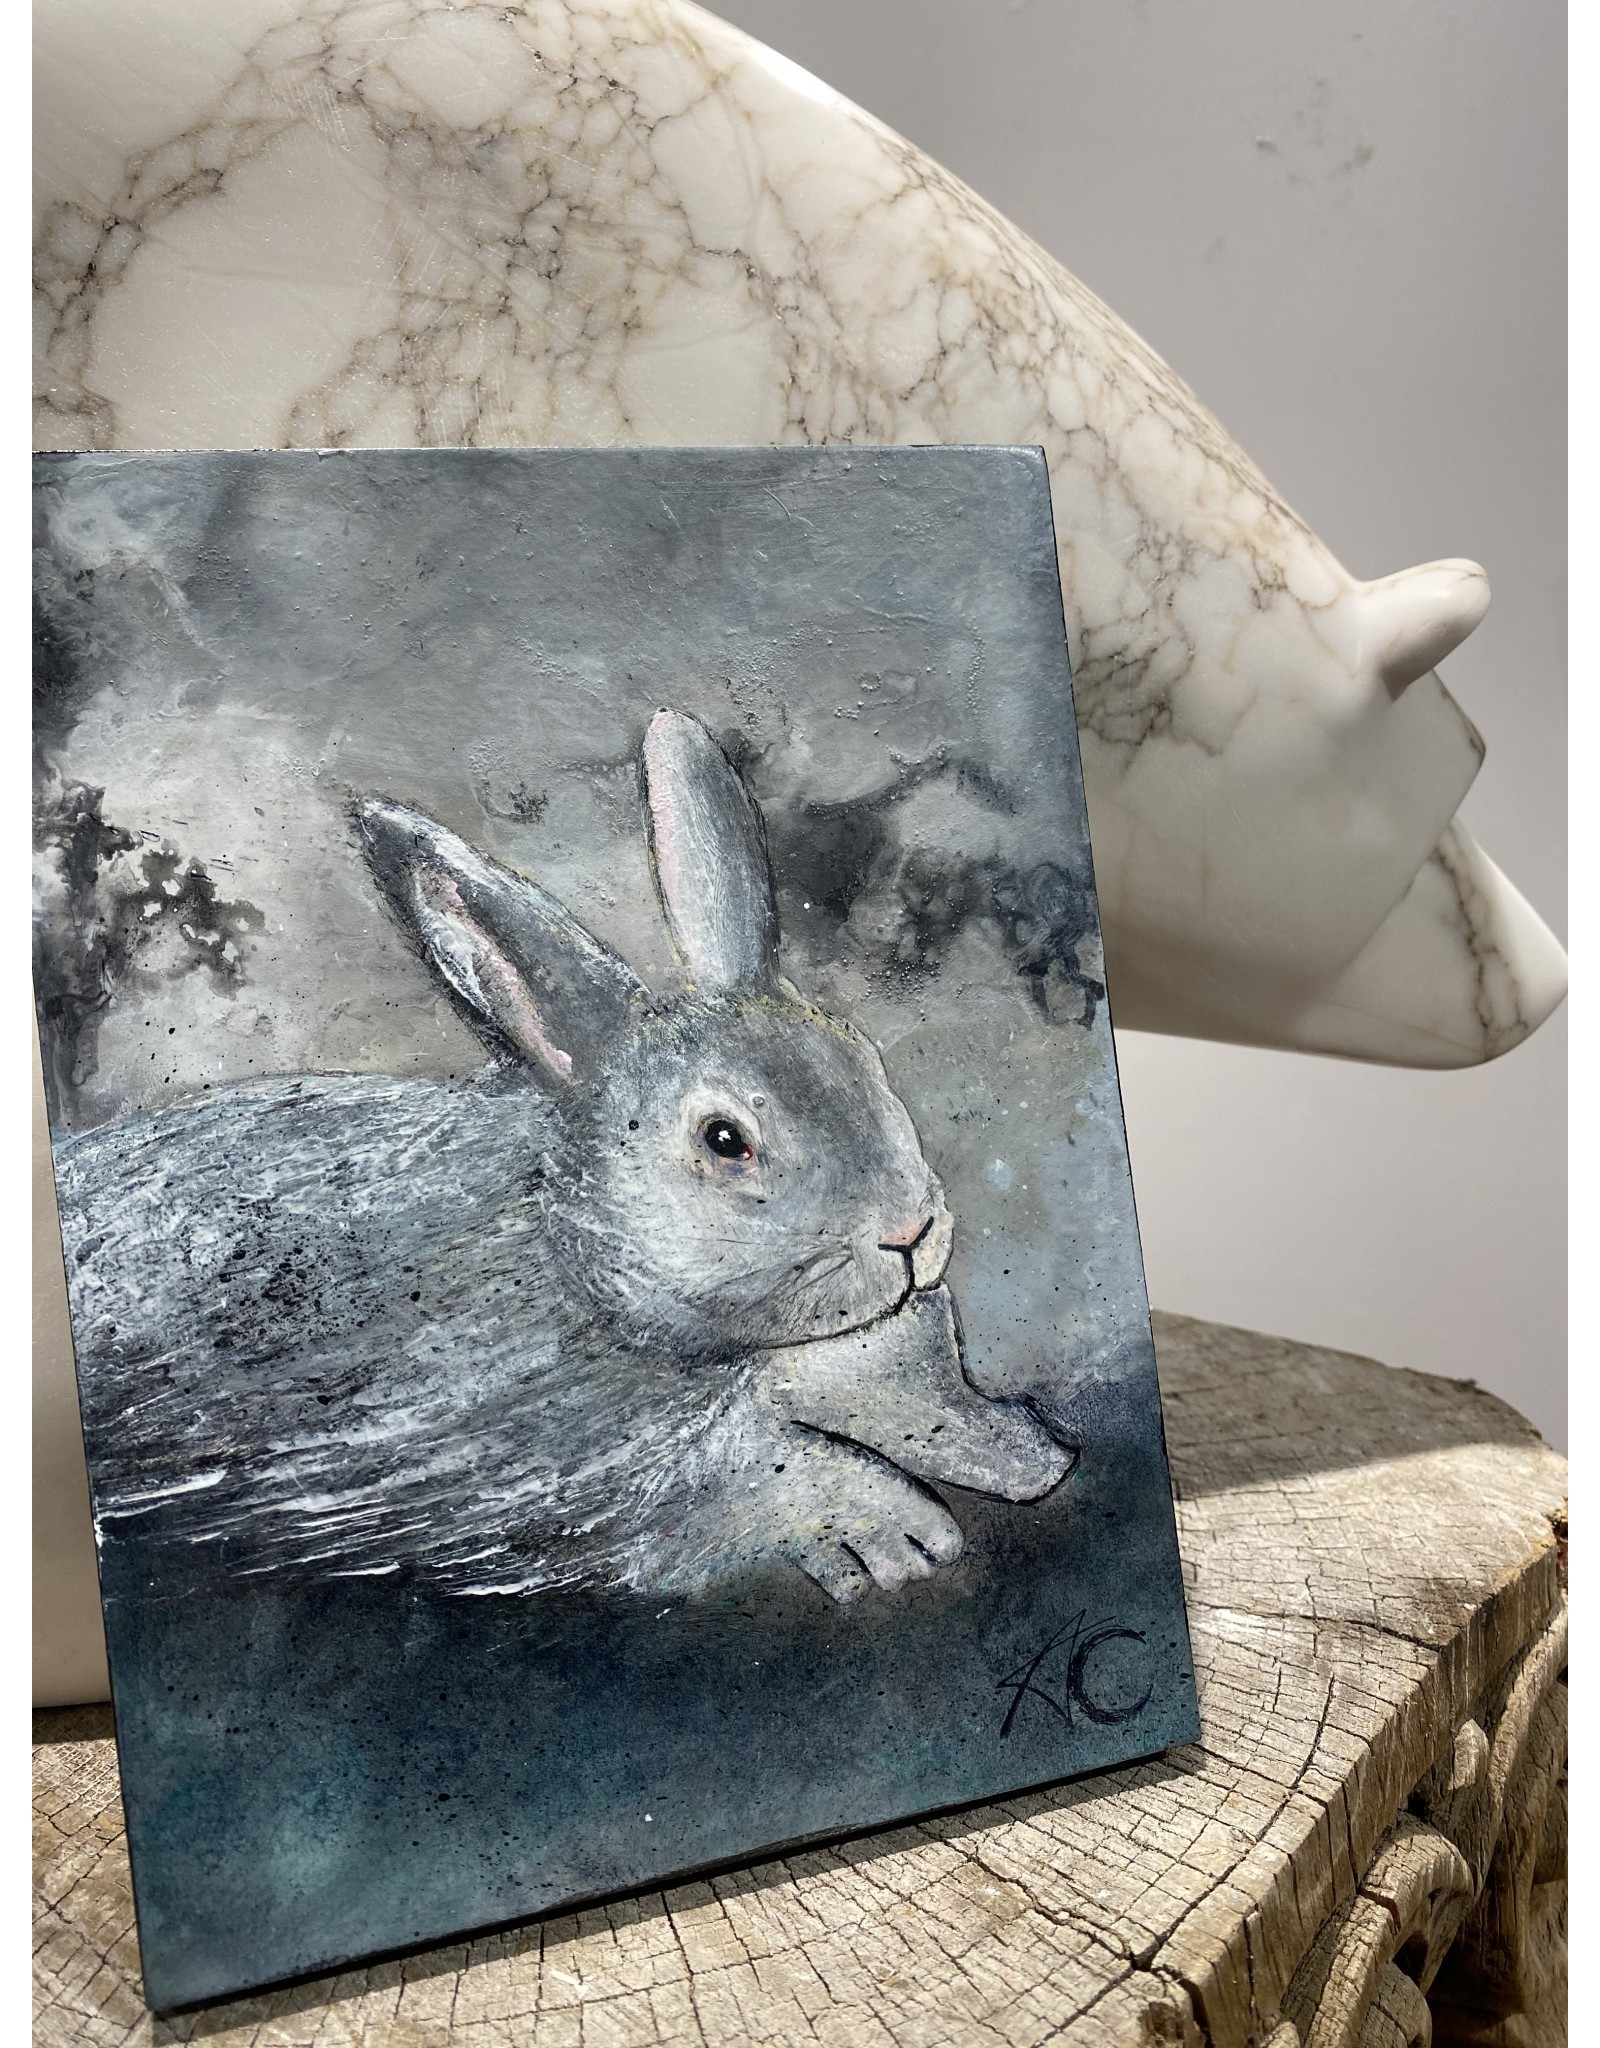 Annette Colby - Painter Bunny, Bunny - Annette Colby